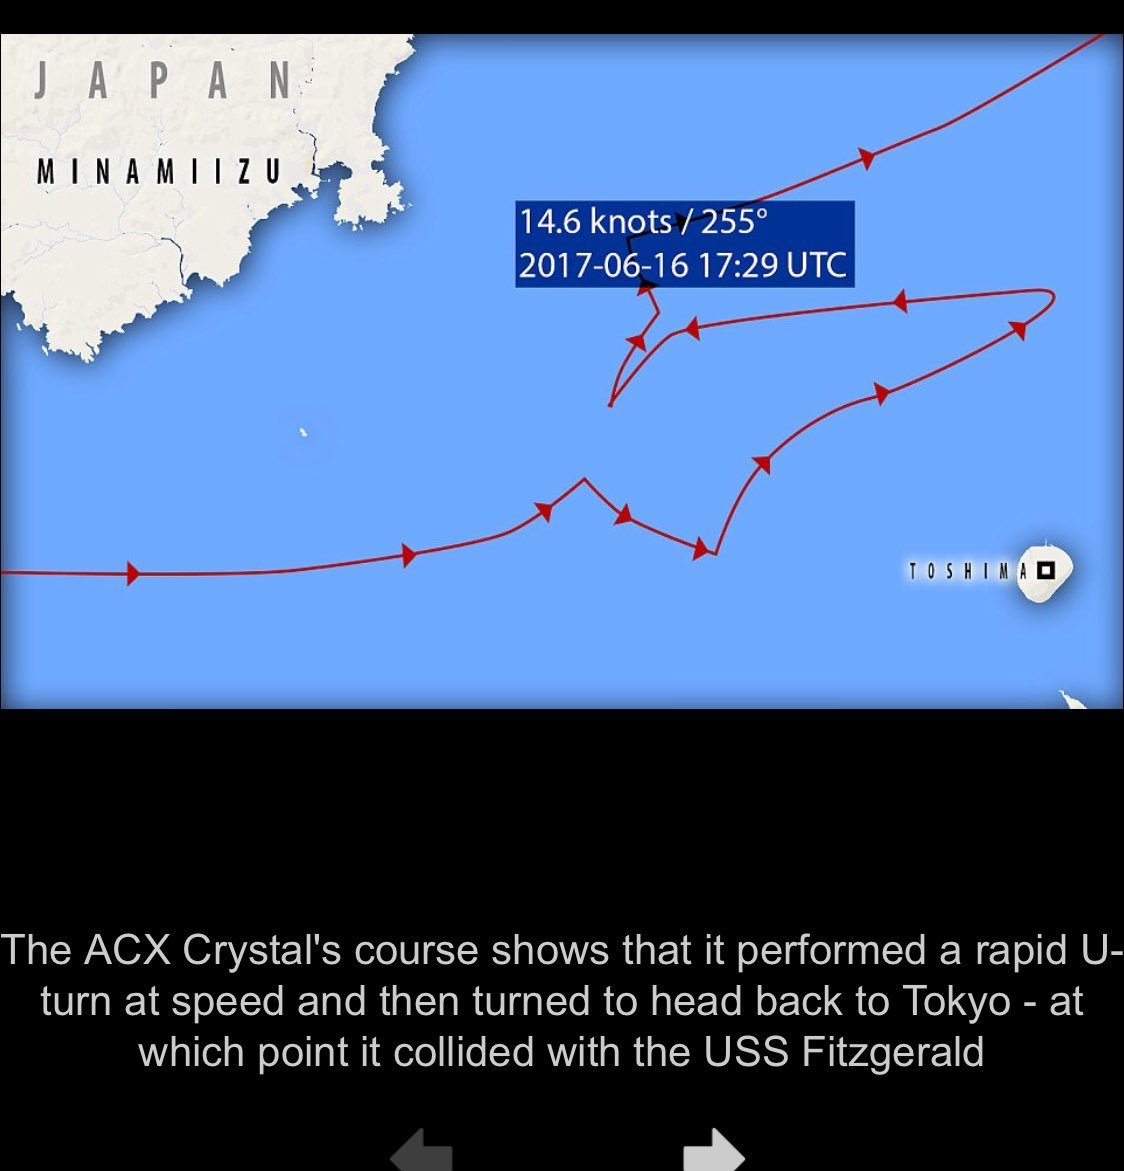 This is, um, awfully suspicious behavior by the freighter that hit the Fitzgerald https://t.co/7O112WSkgG